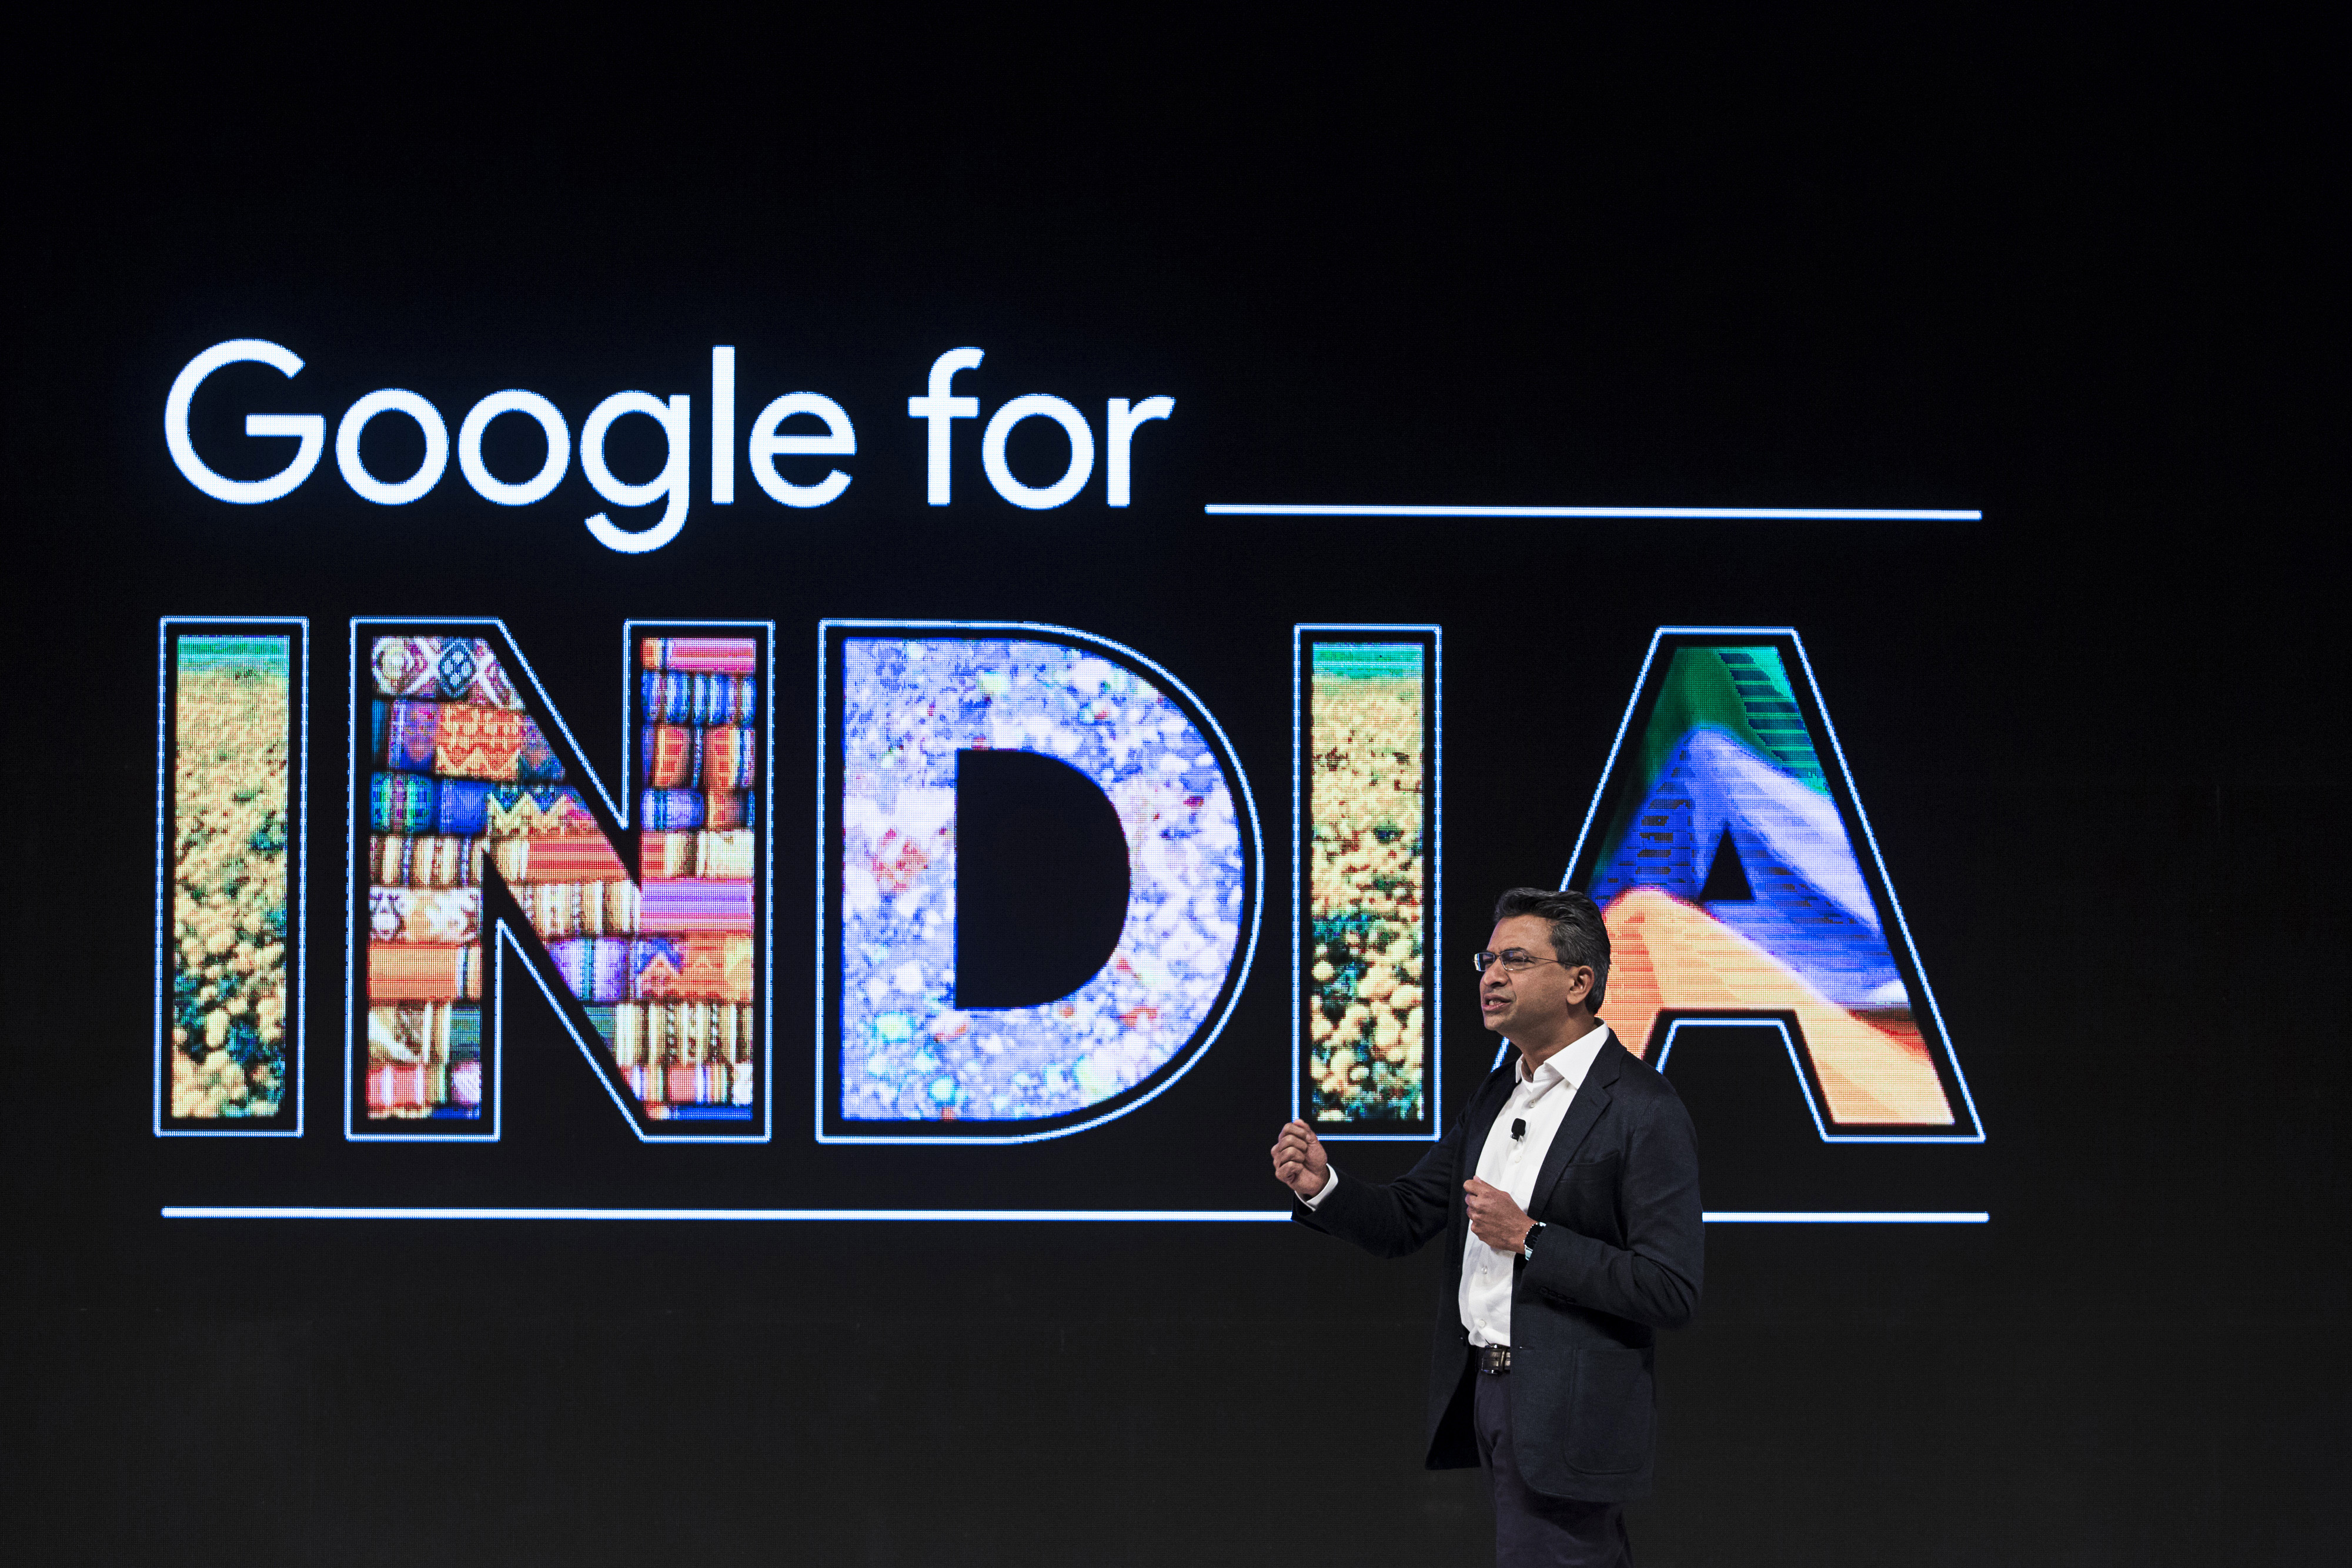 Rajan Anandan, vice president and managing director of South East Asia and India at Google Inc., speaks during the 'Google for India' event in New Delhi, India.